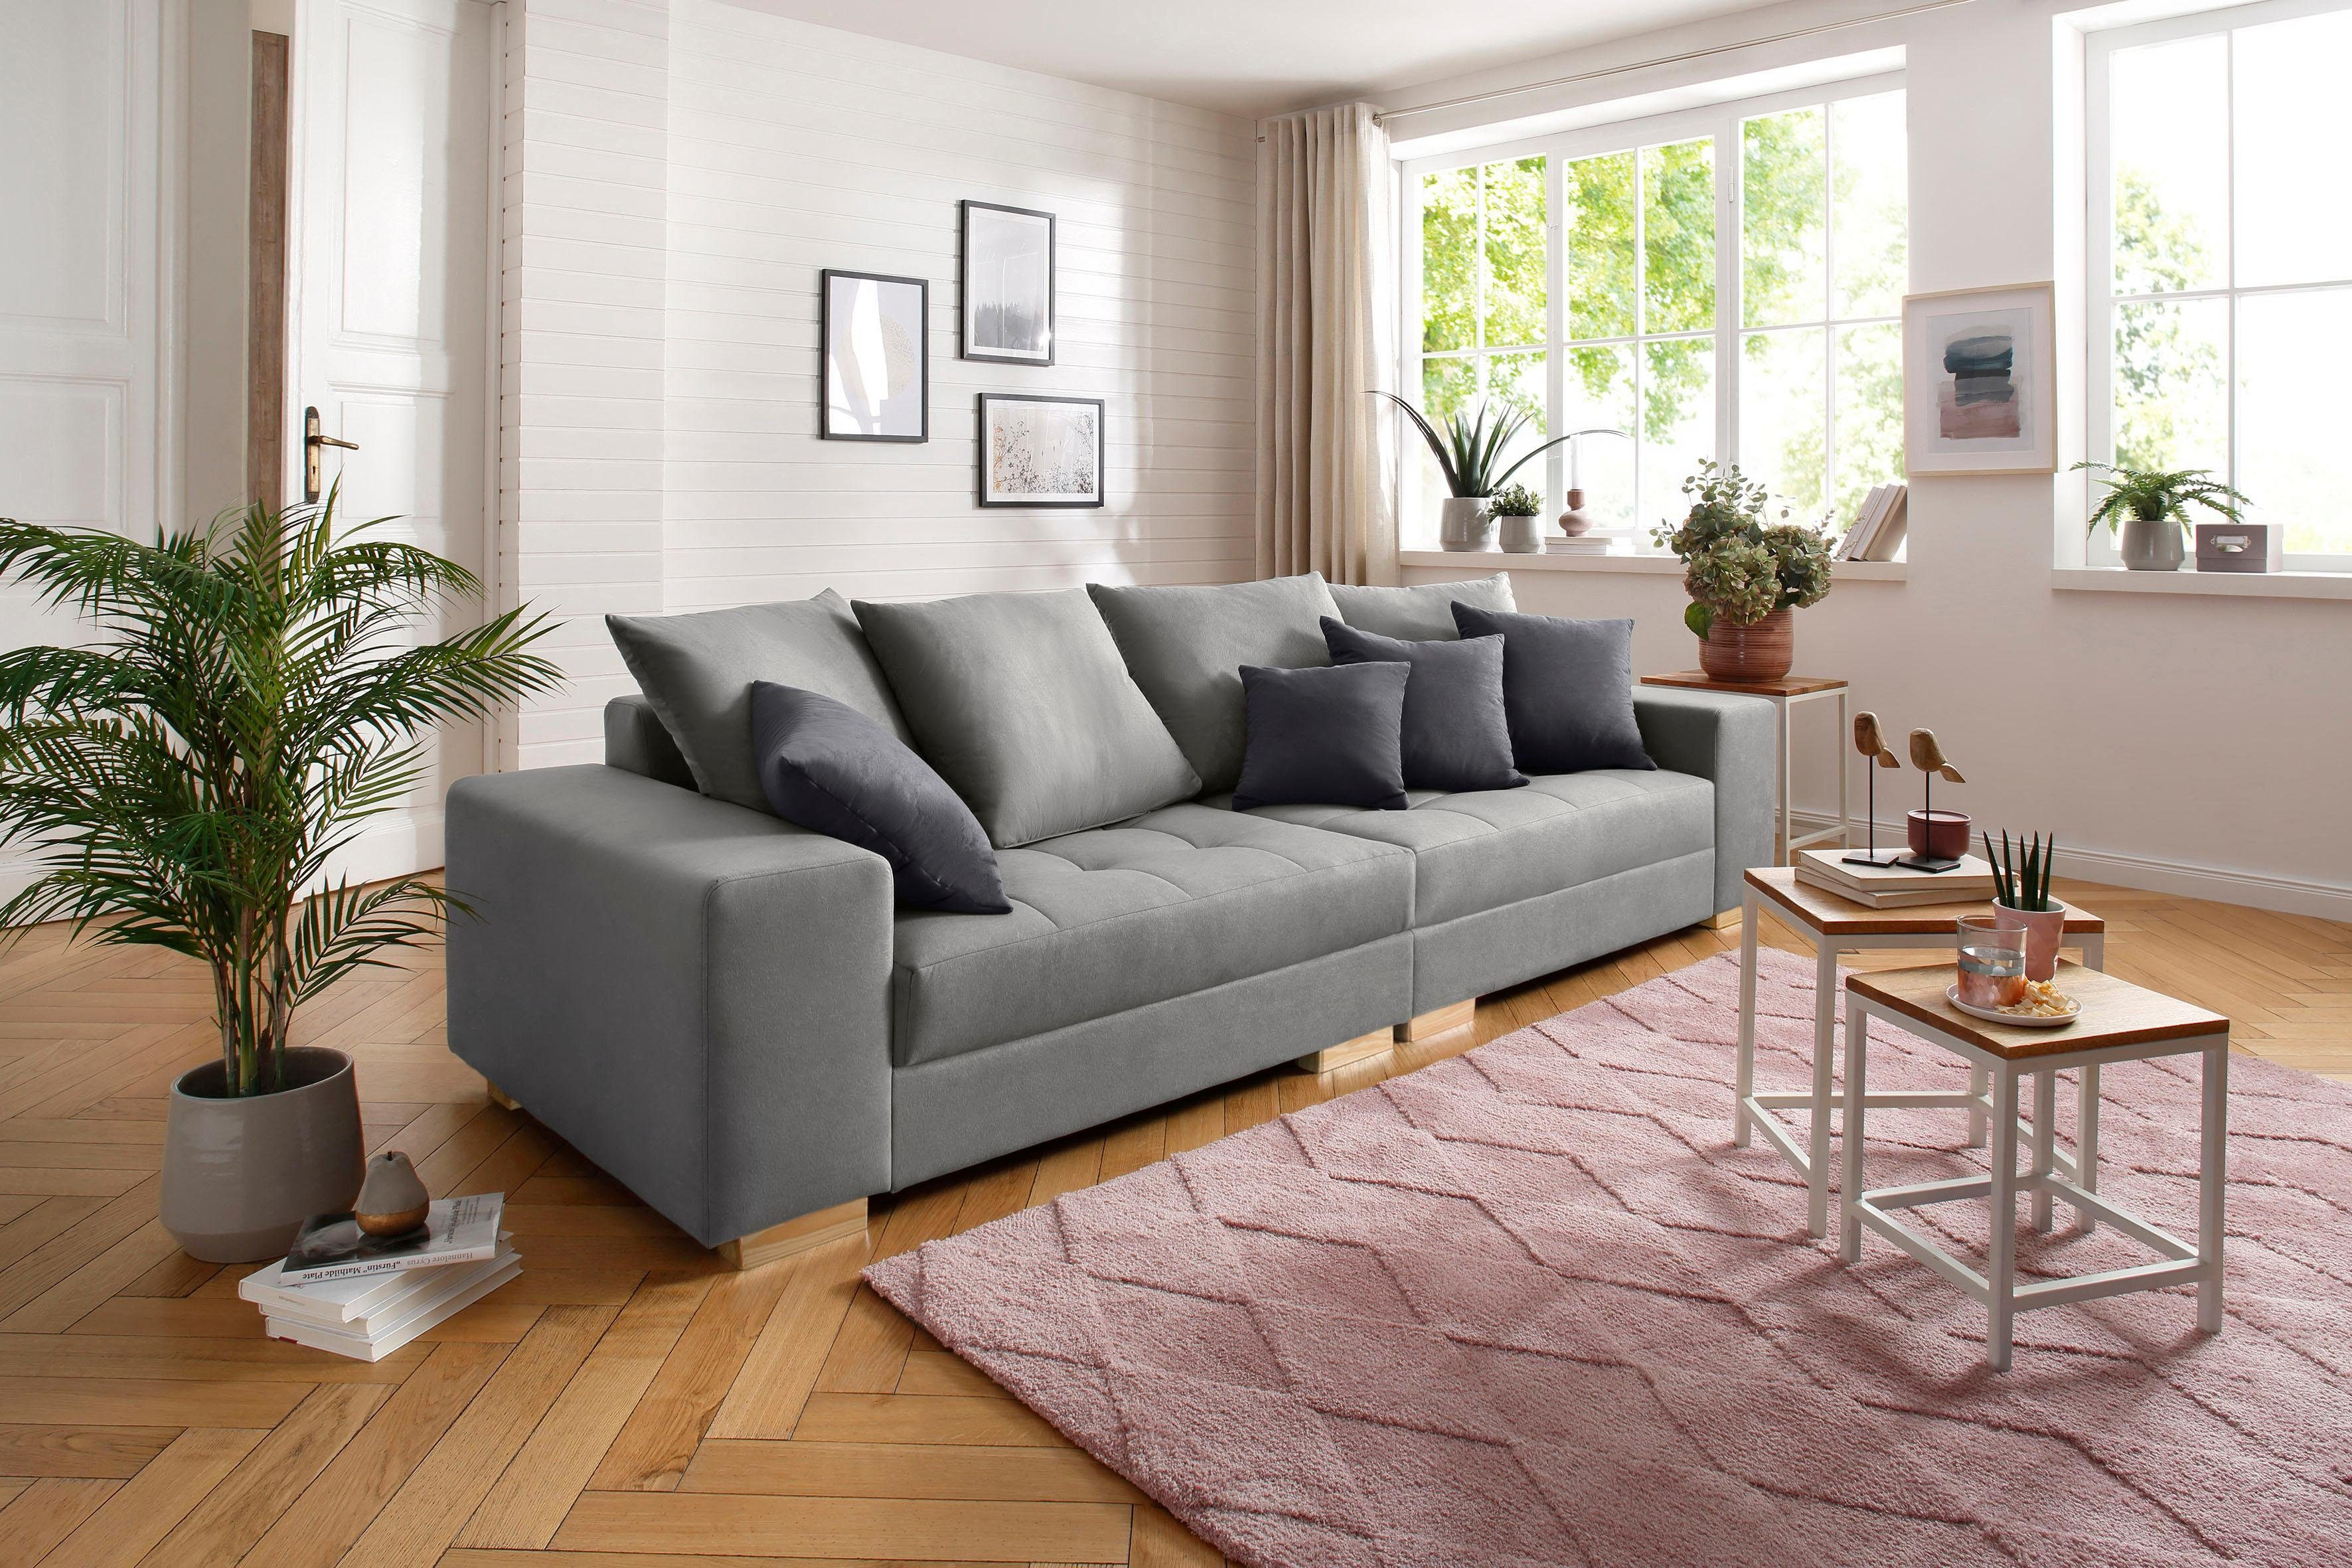 Home affaire Big-Sofa Valena